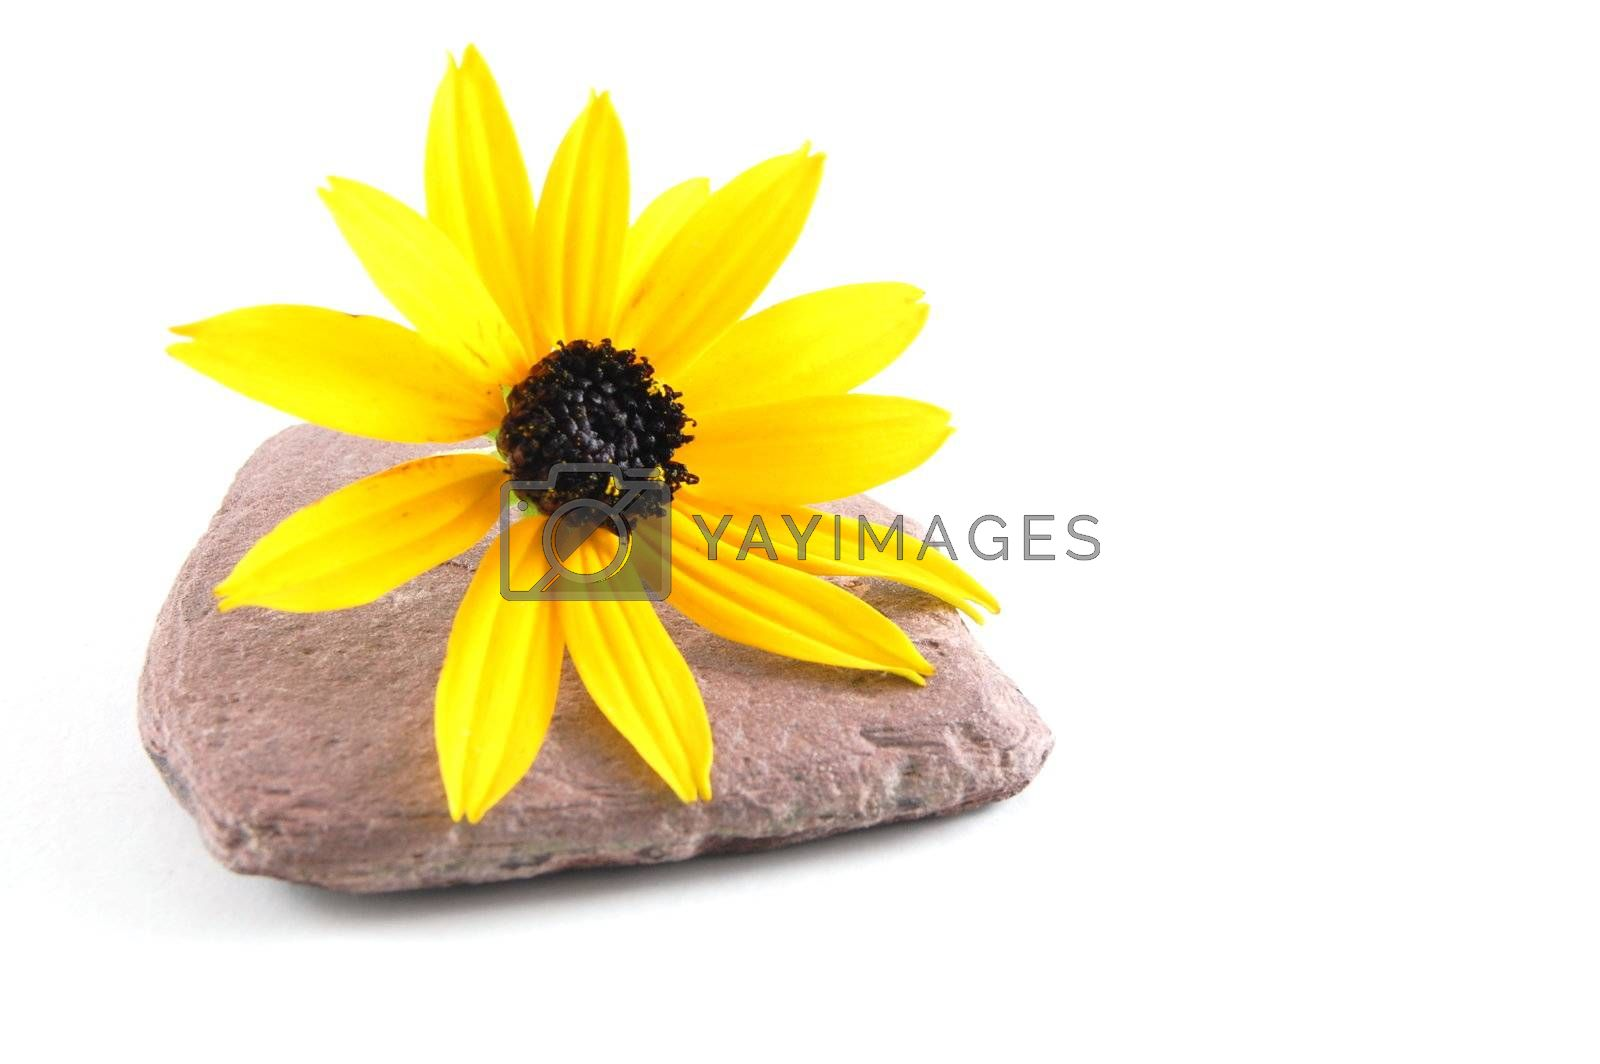 A flower isolated on a white background.